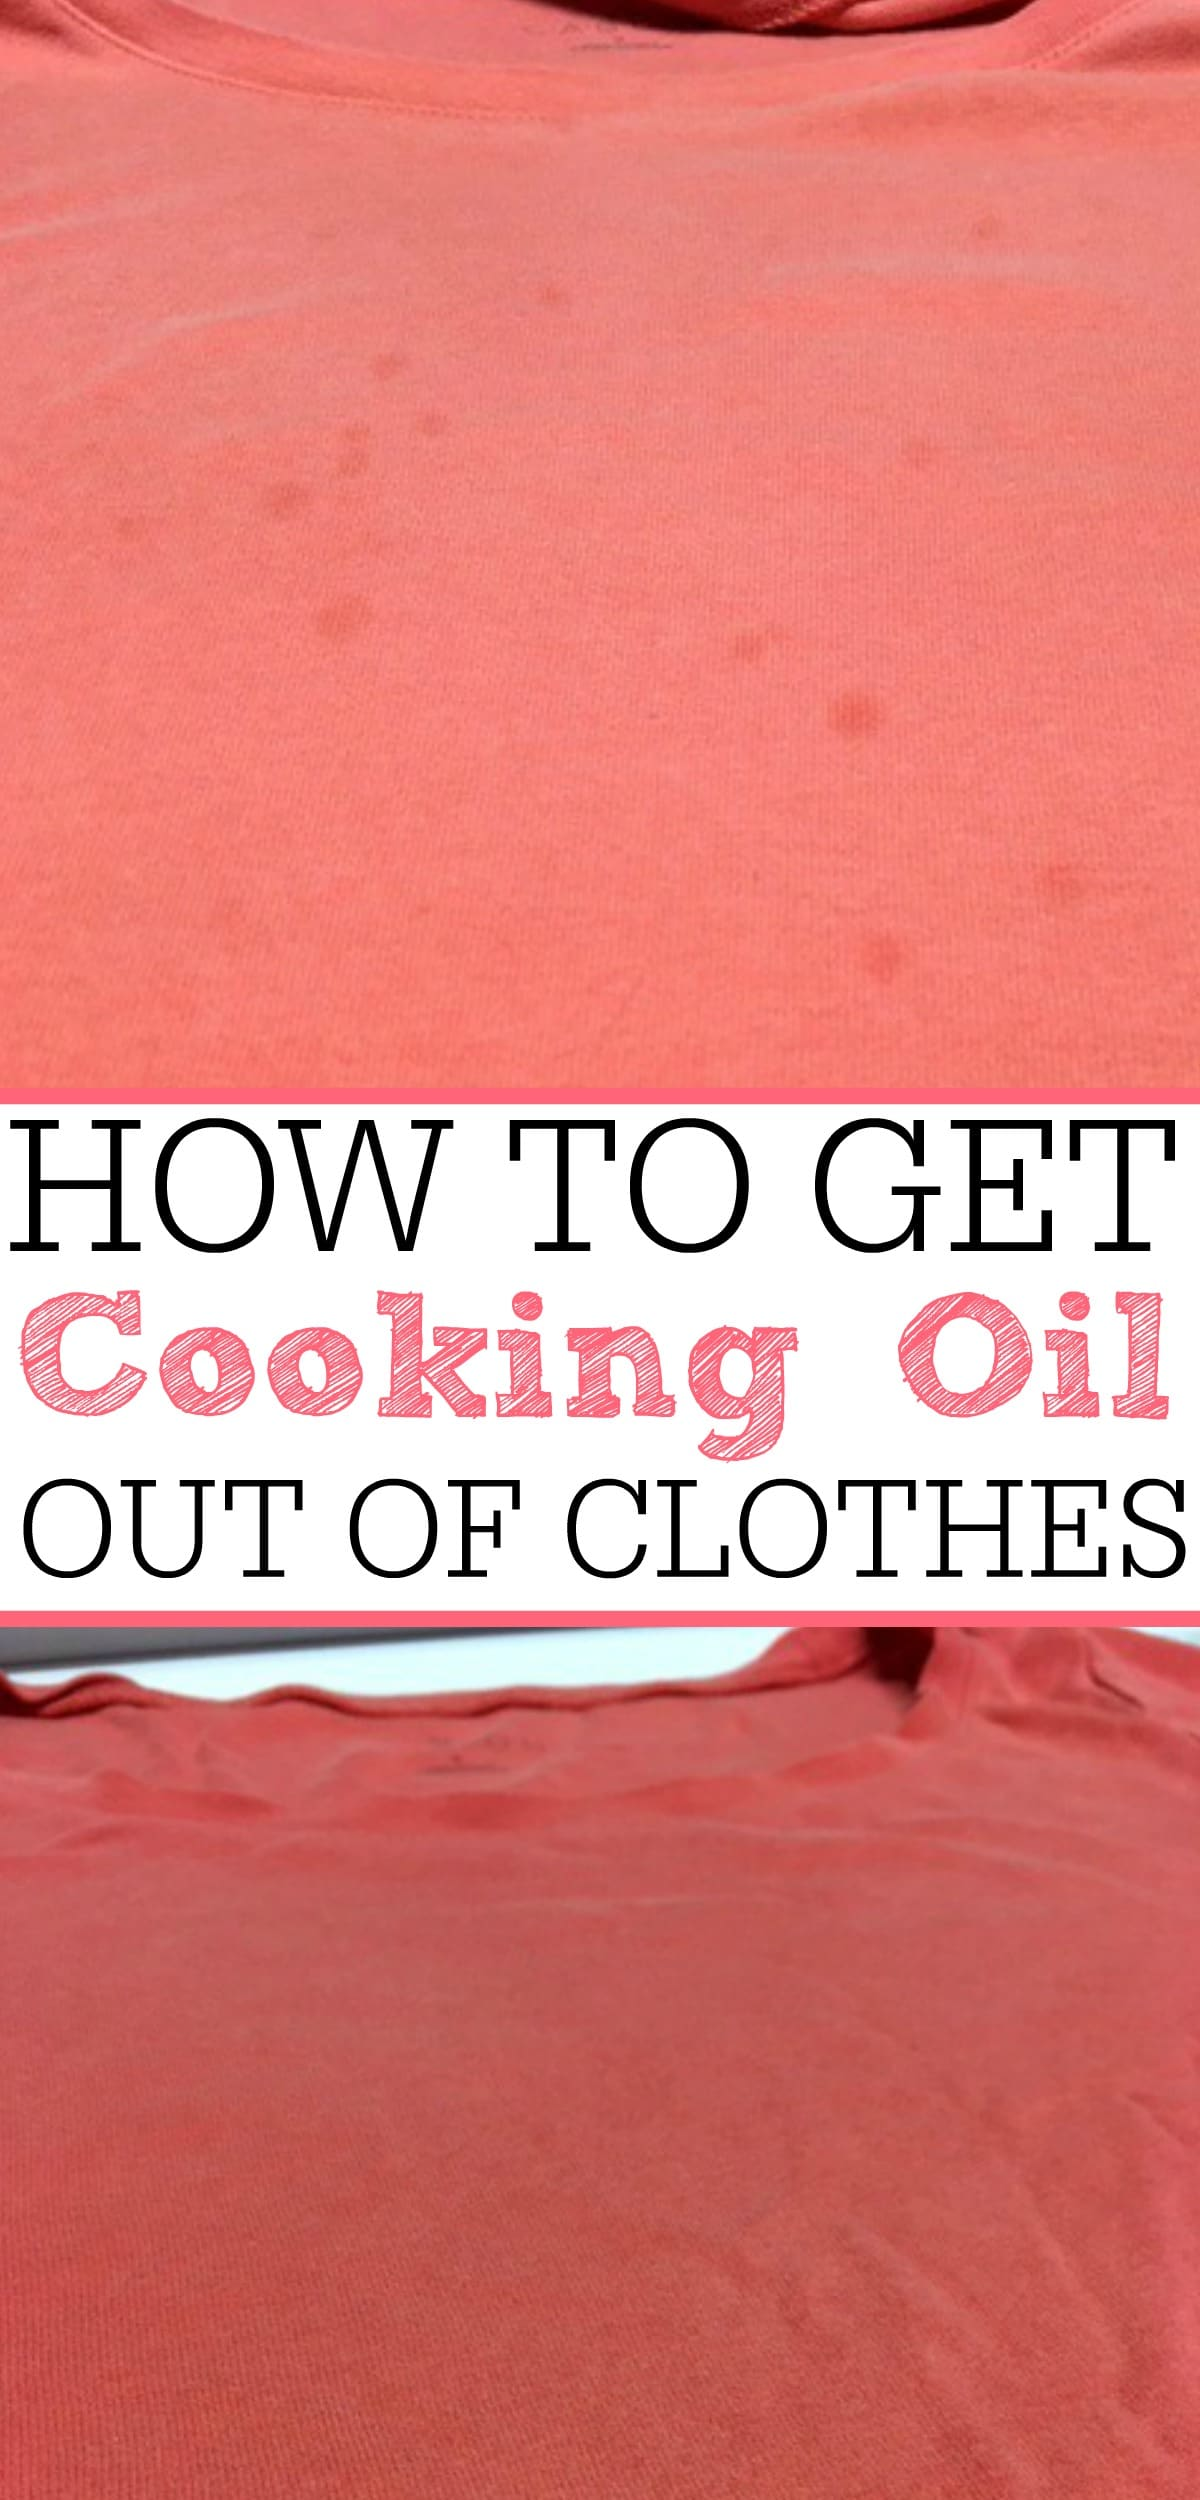 Oil stains on your favorite shirt? Check out this crazy simple tip on how to get cooking oil out of clothes. They will look like new again!